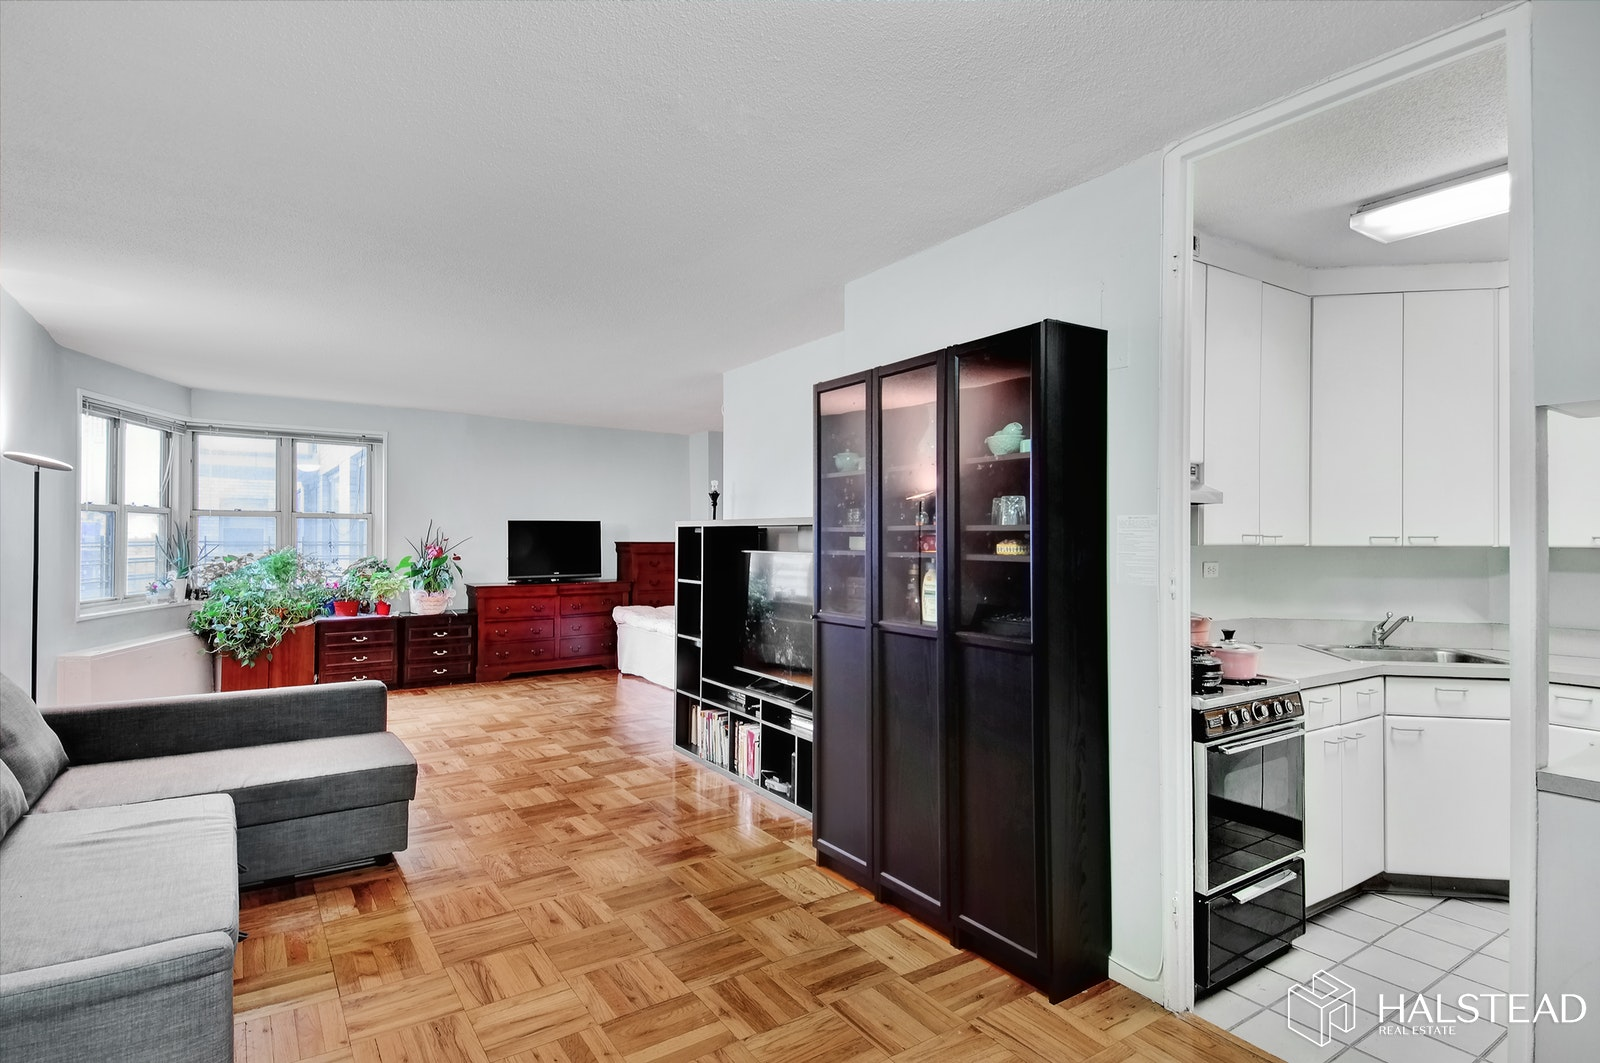 300 EAST 40TH STREET 23L, Midtown East, $620,000, Web #: 19155192